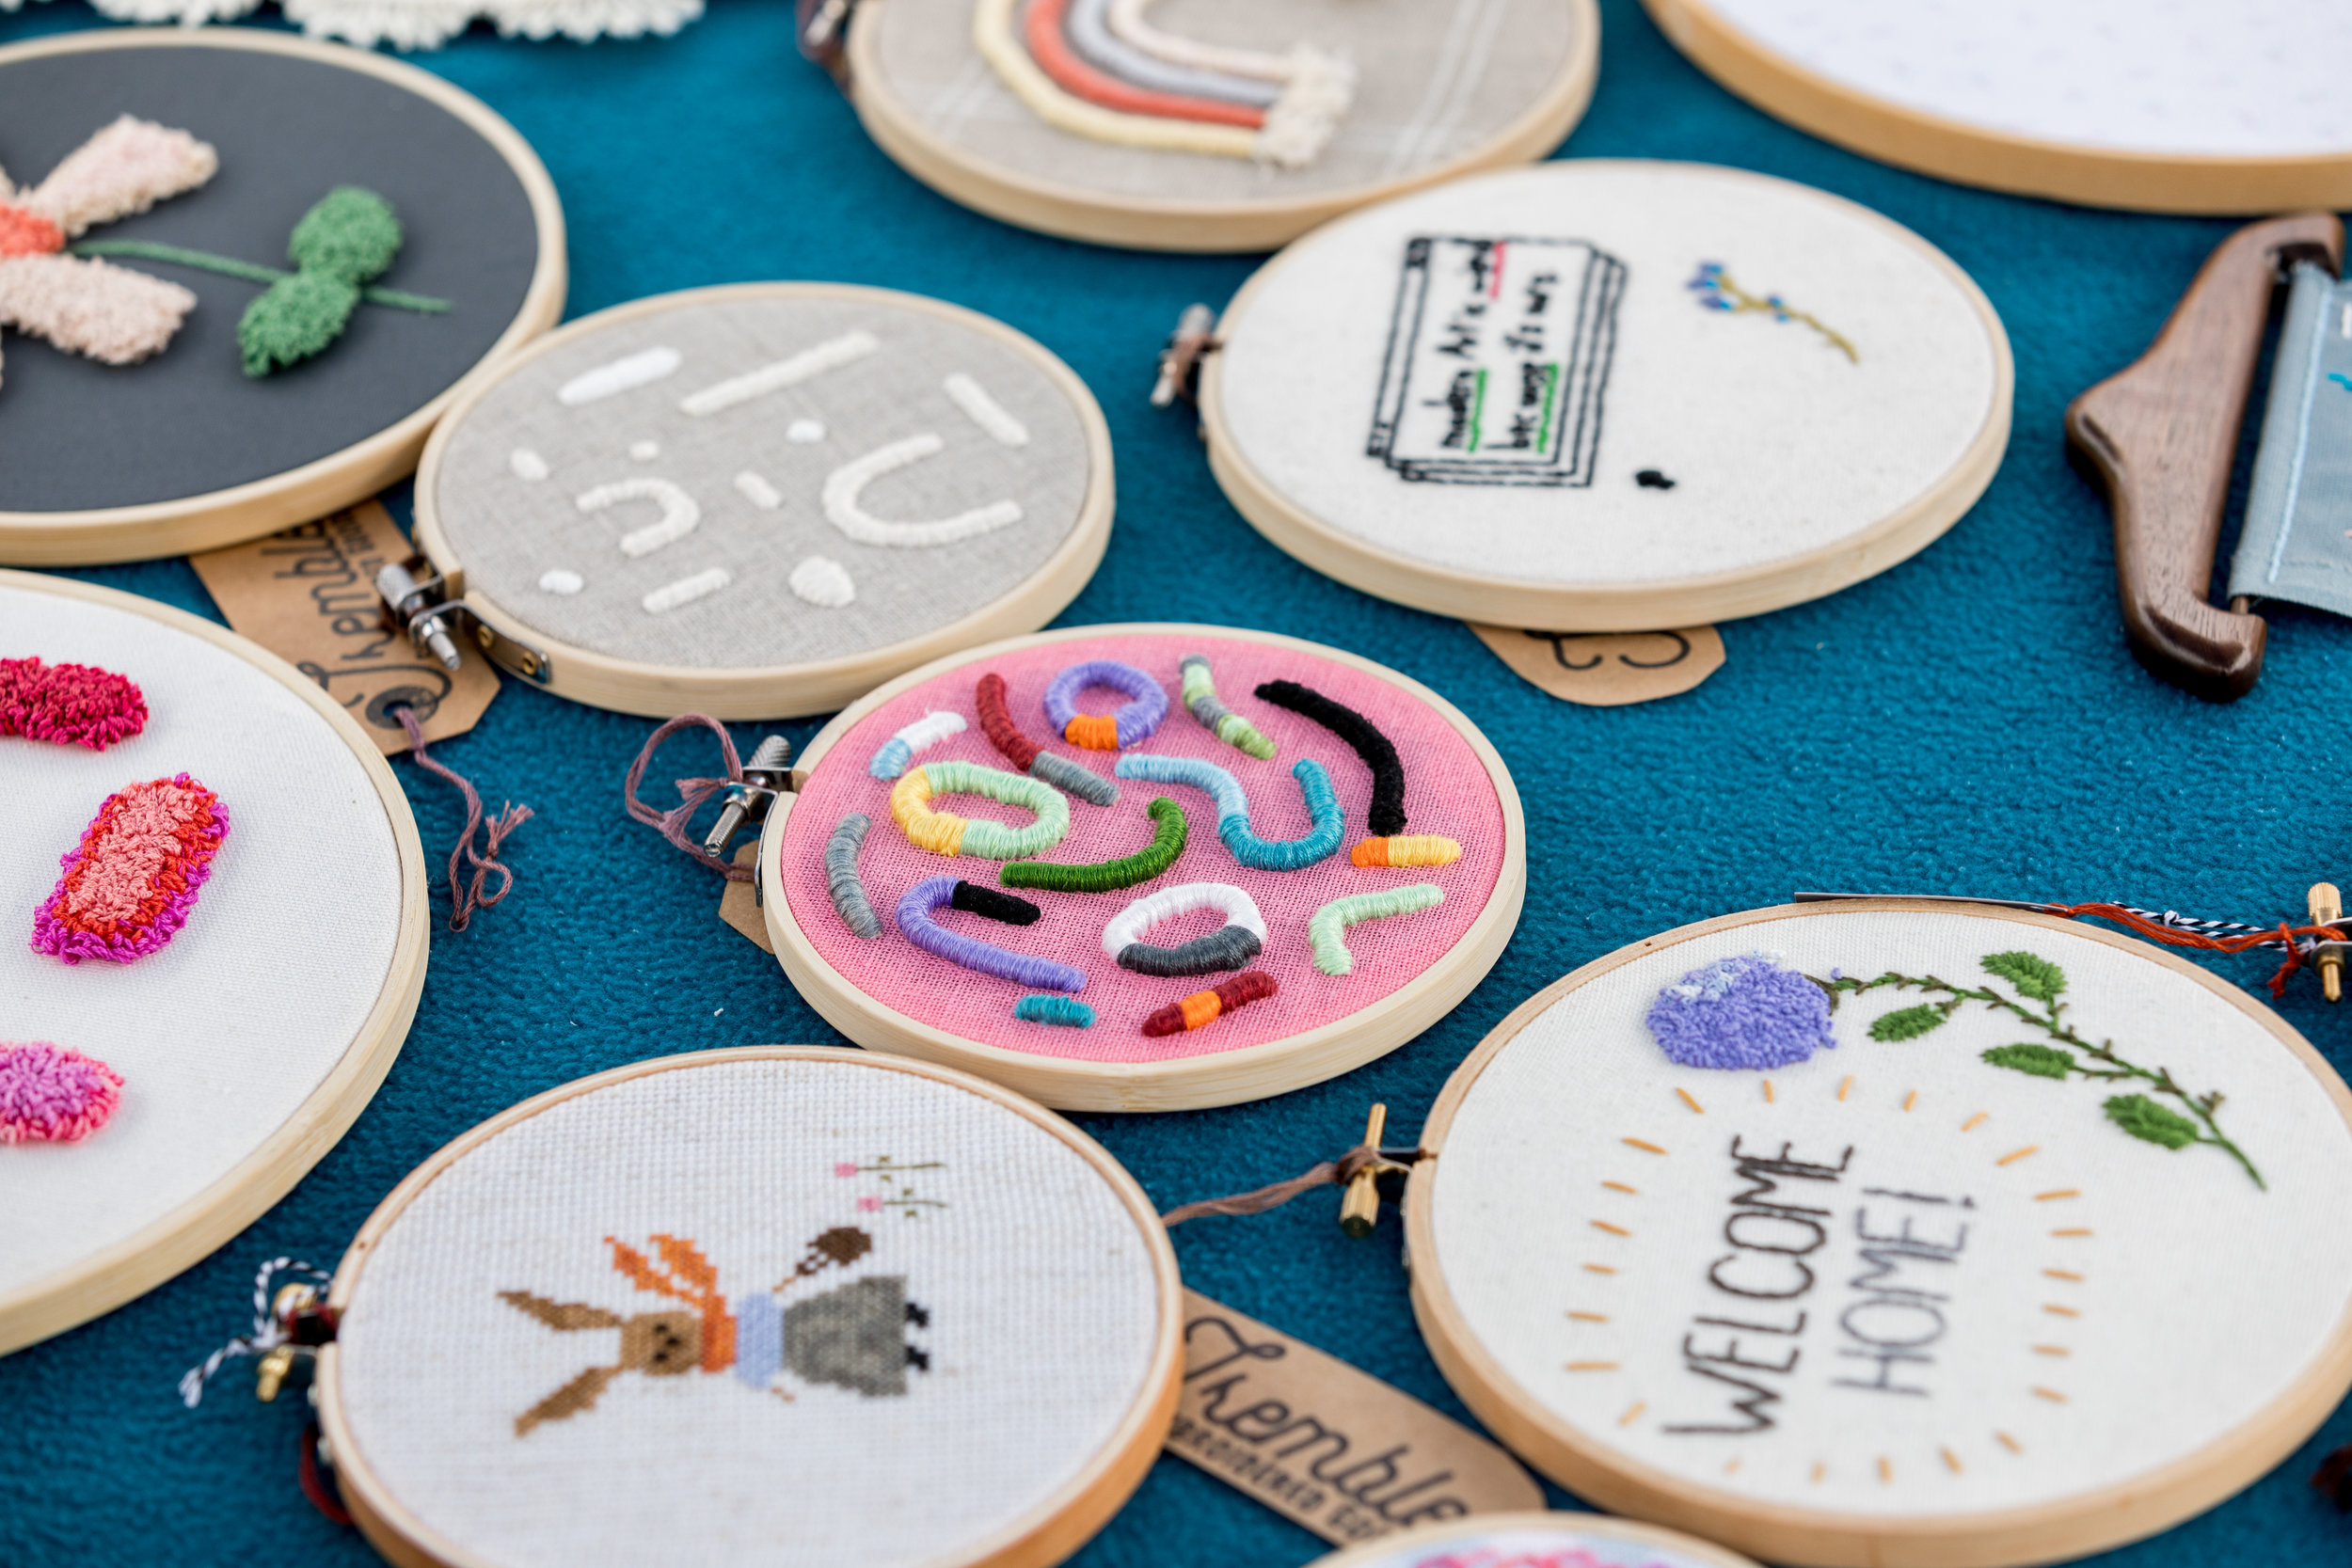 Tremble Hand Embroidery - Photo by Danielle Doepke